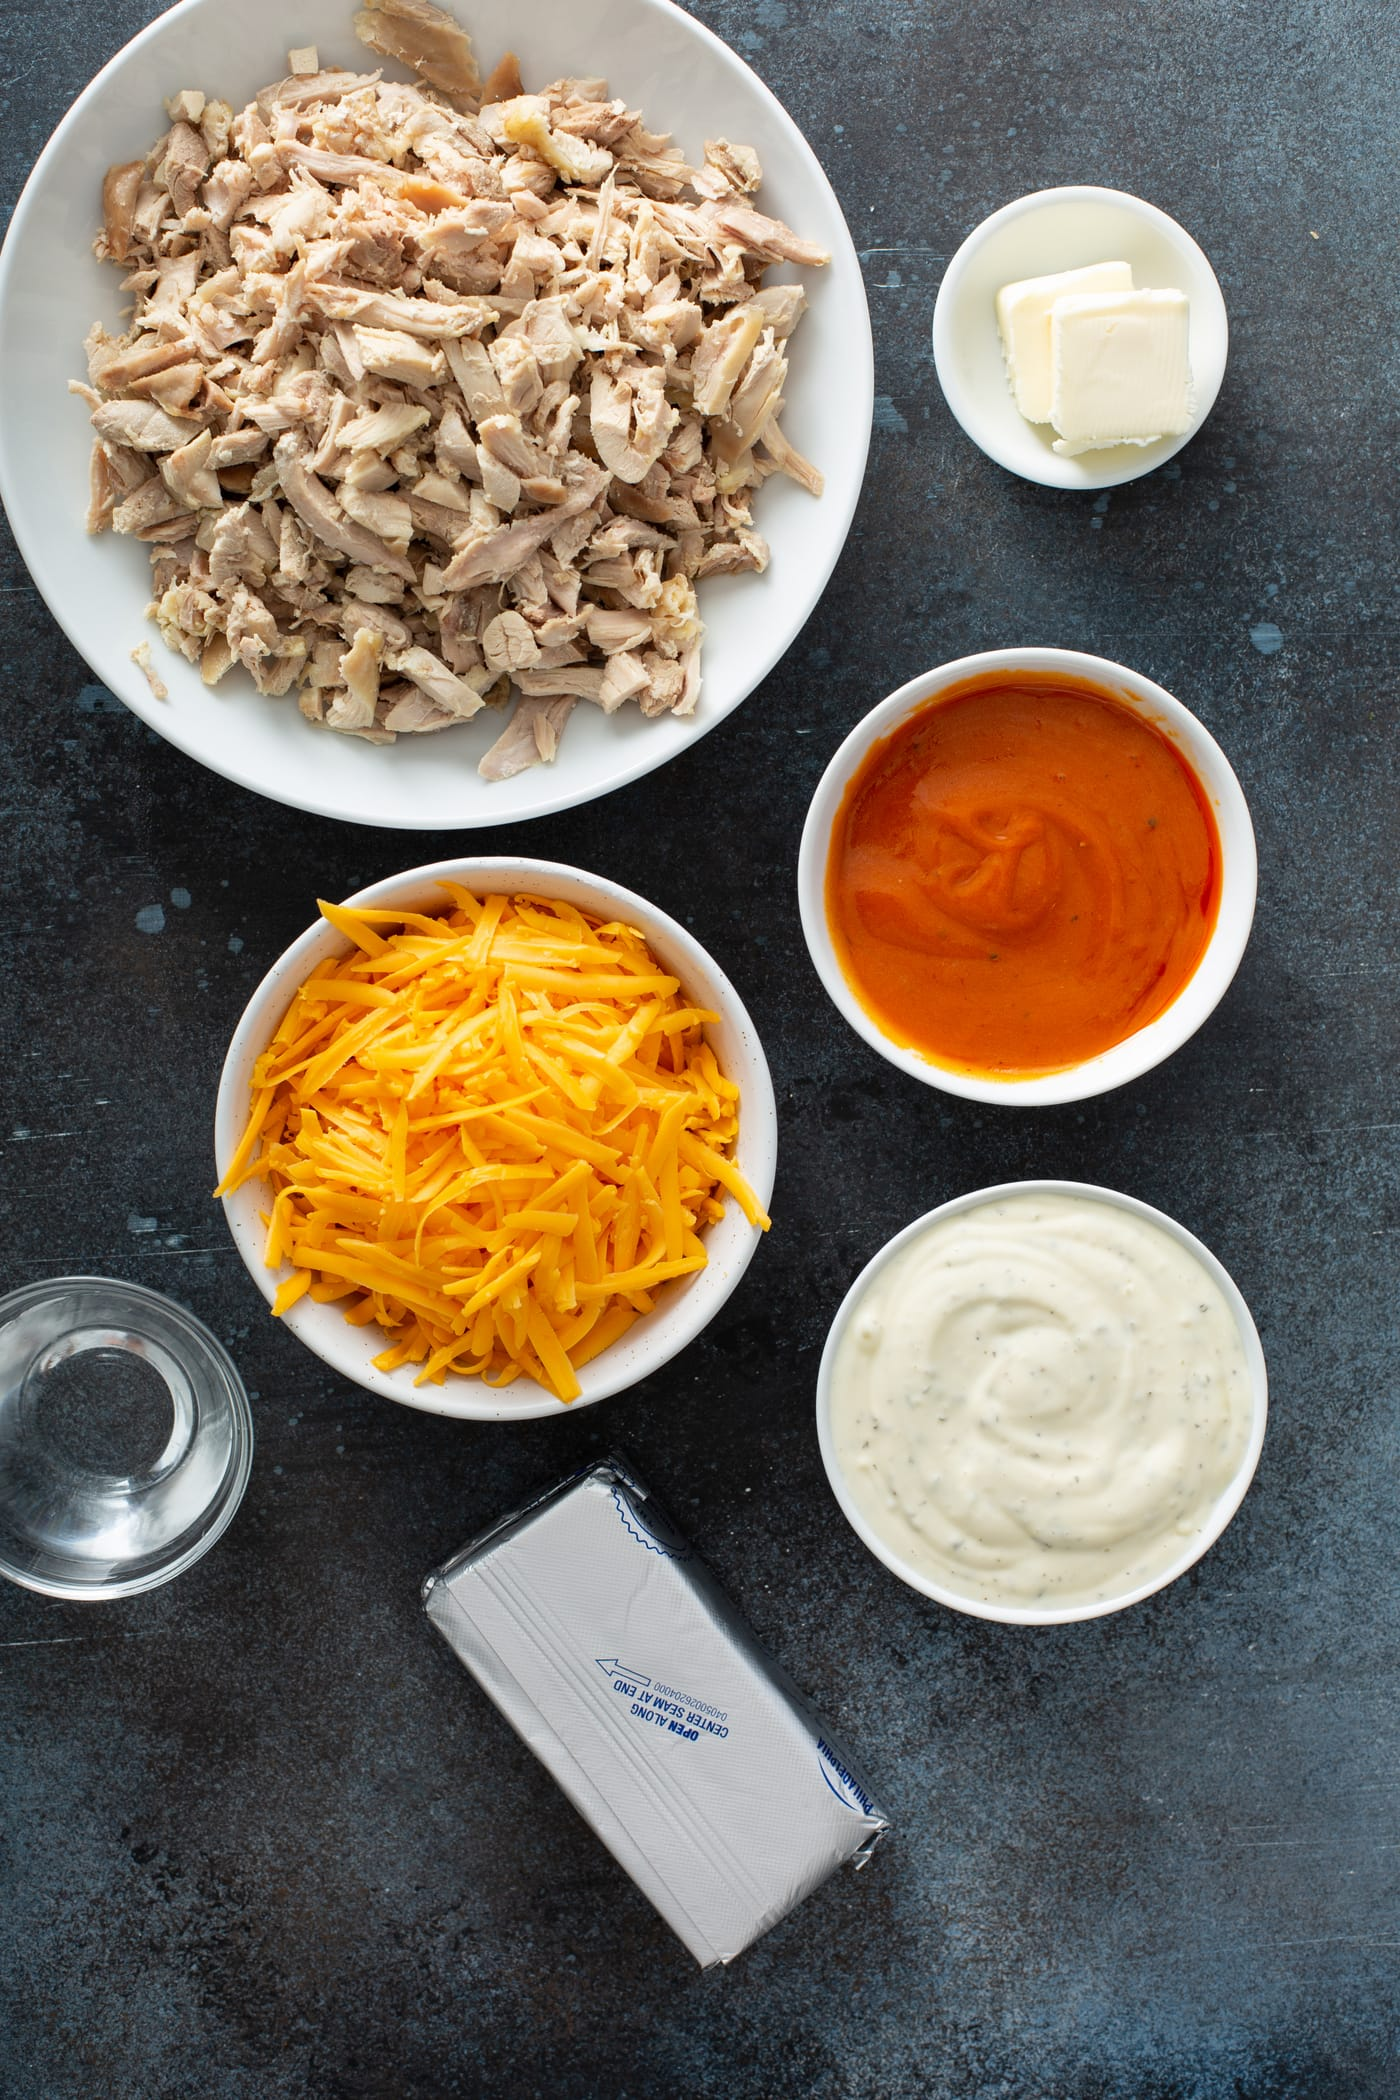 Small containers of ingredients for buffalo chicken dip. There is shredded cheese, shredded chicken, cream cheese, buffalo sauce, ranch dressing, and water.